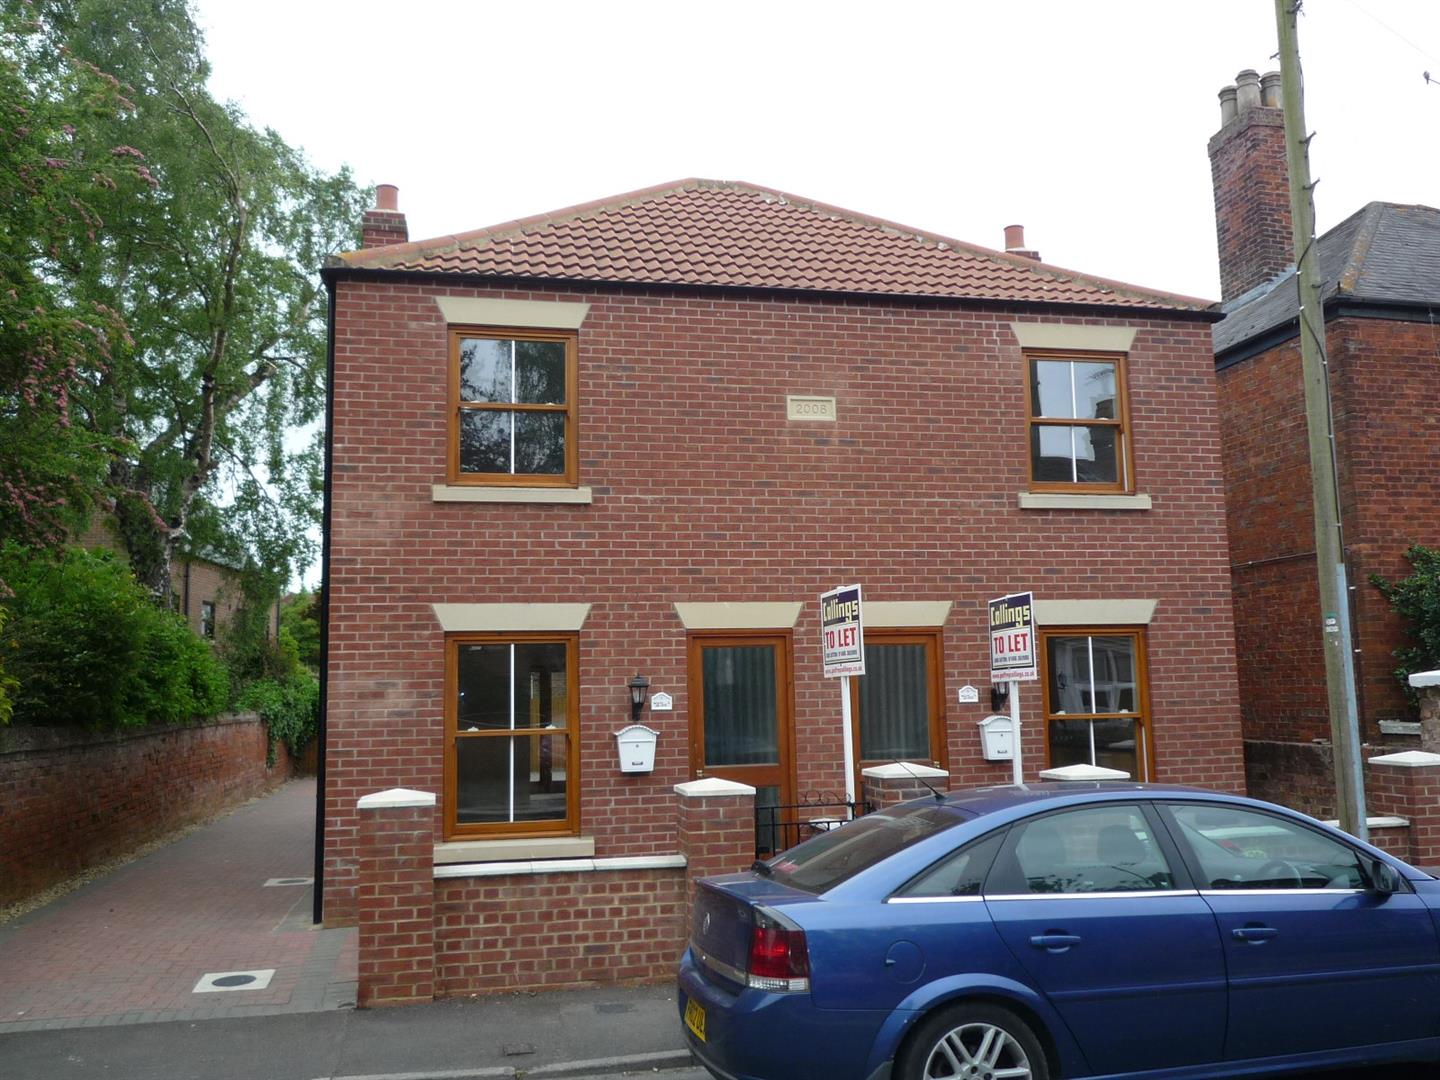 3 bed house to rent in Holbeach Spalding, PE12 7DR  - Property Image 1